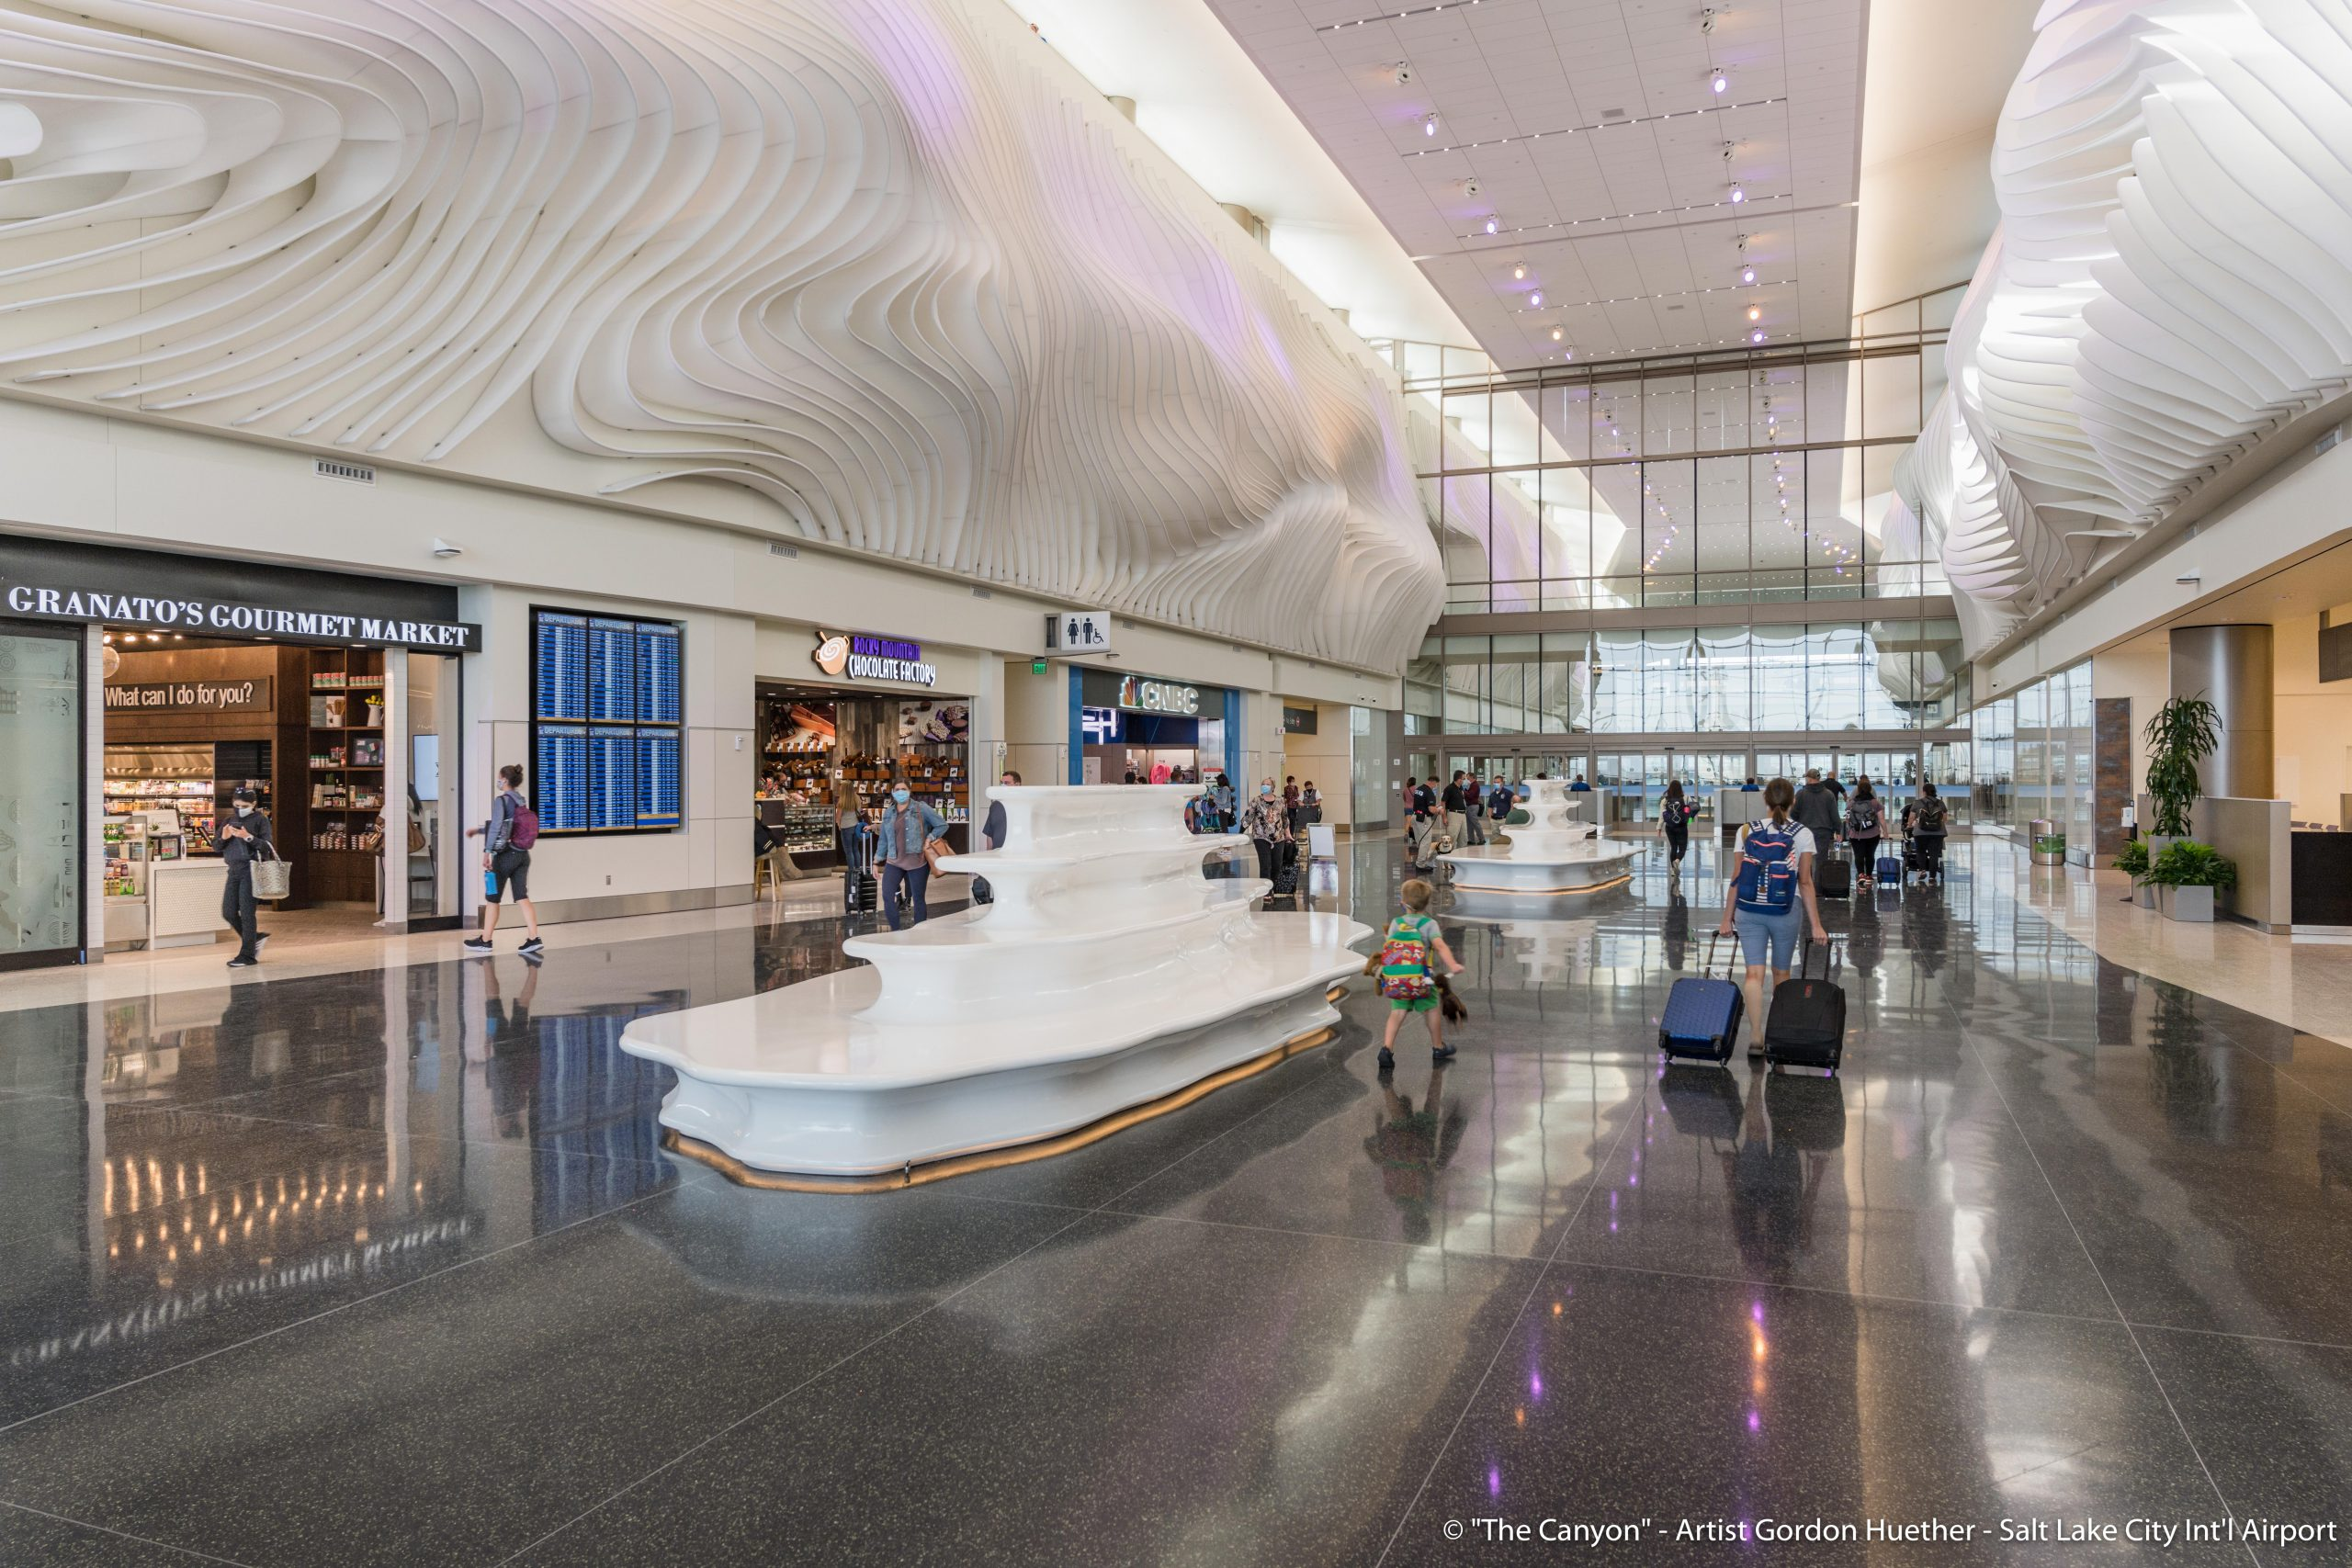 Salt Lake City Int'l Airport – The Canyon